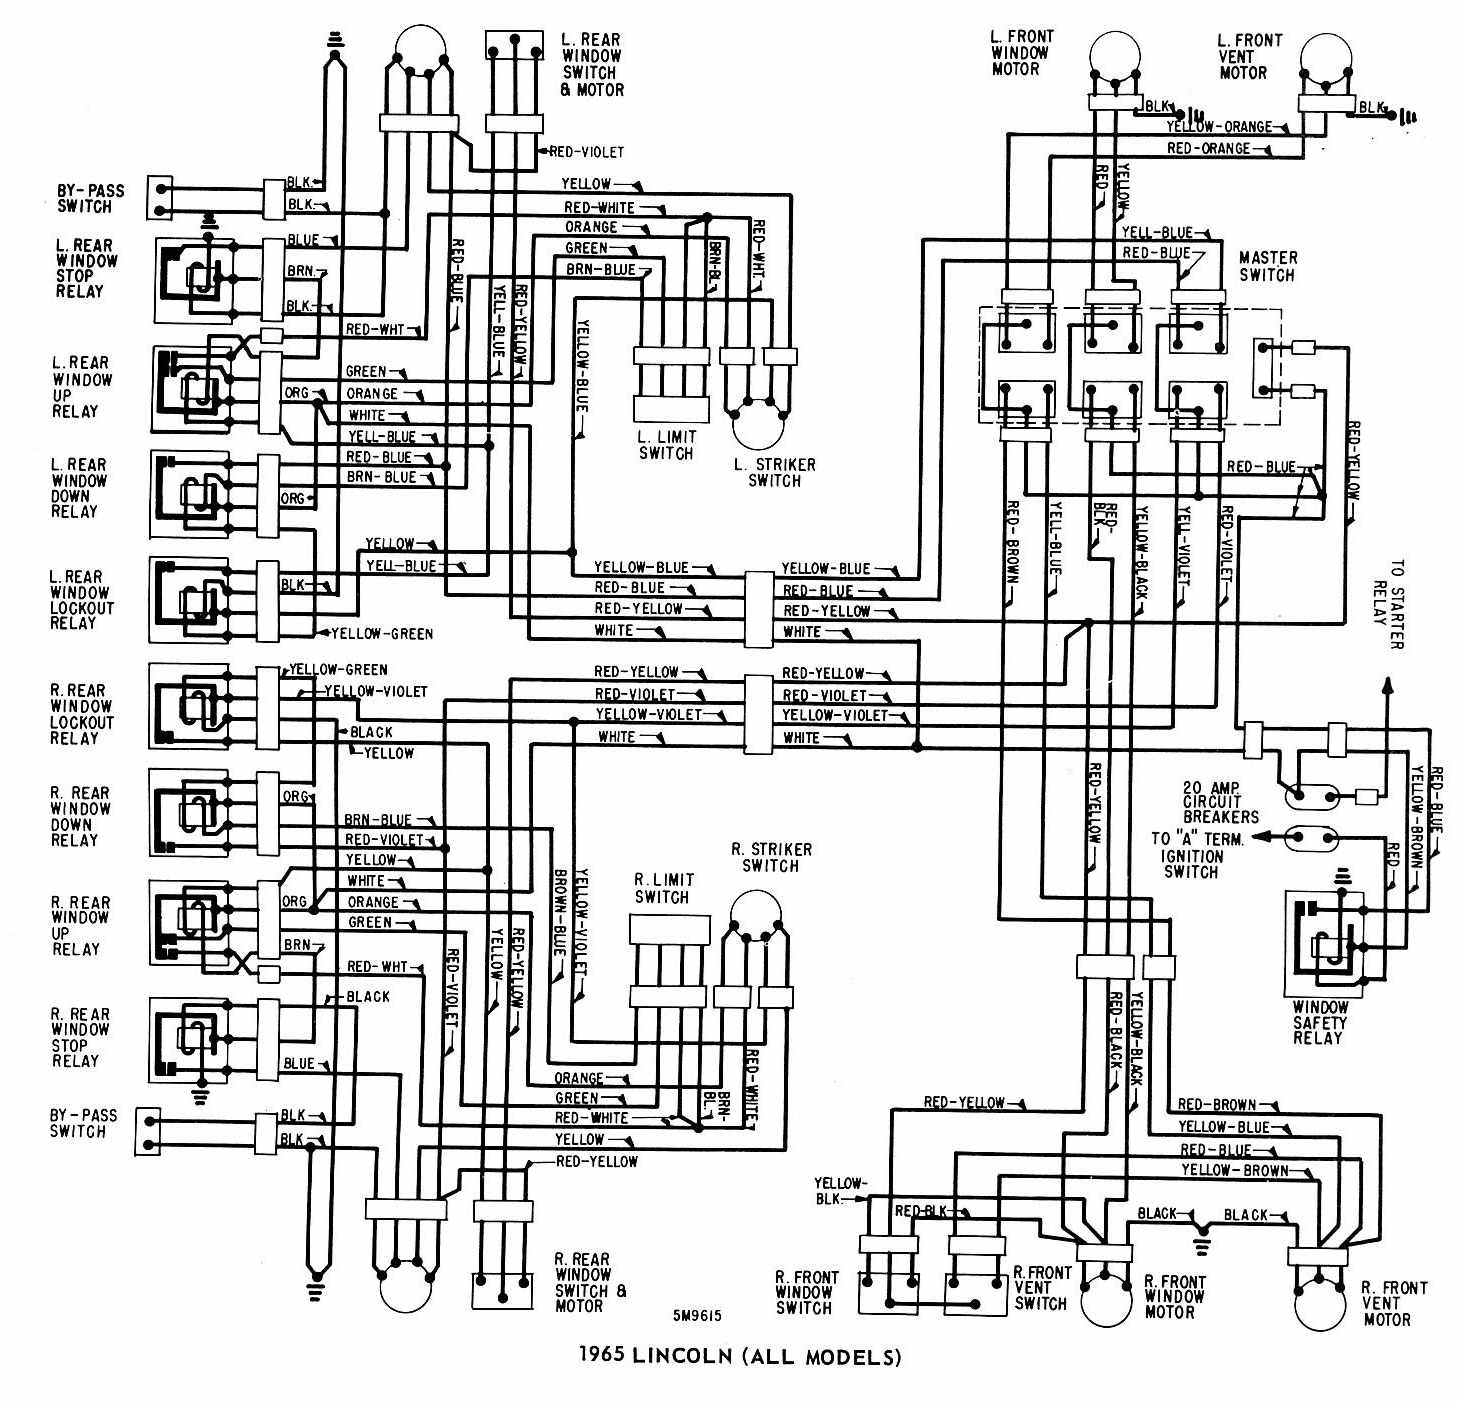 1965 Lincoln Wiring Diagrams Automotive on 1953 f100 transmission wiring diagram